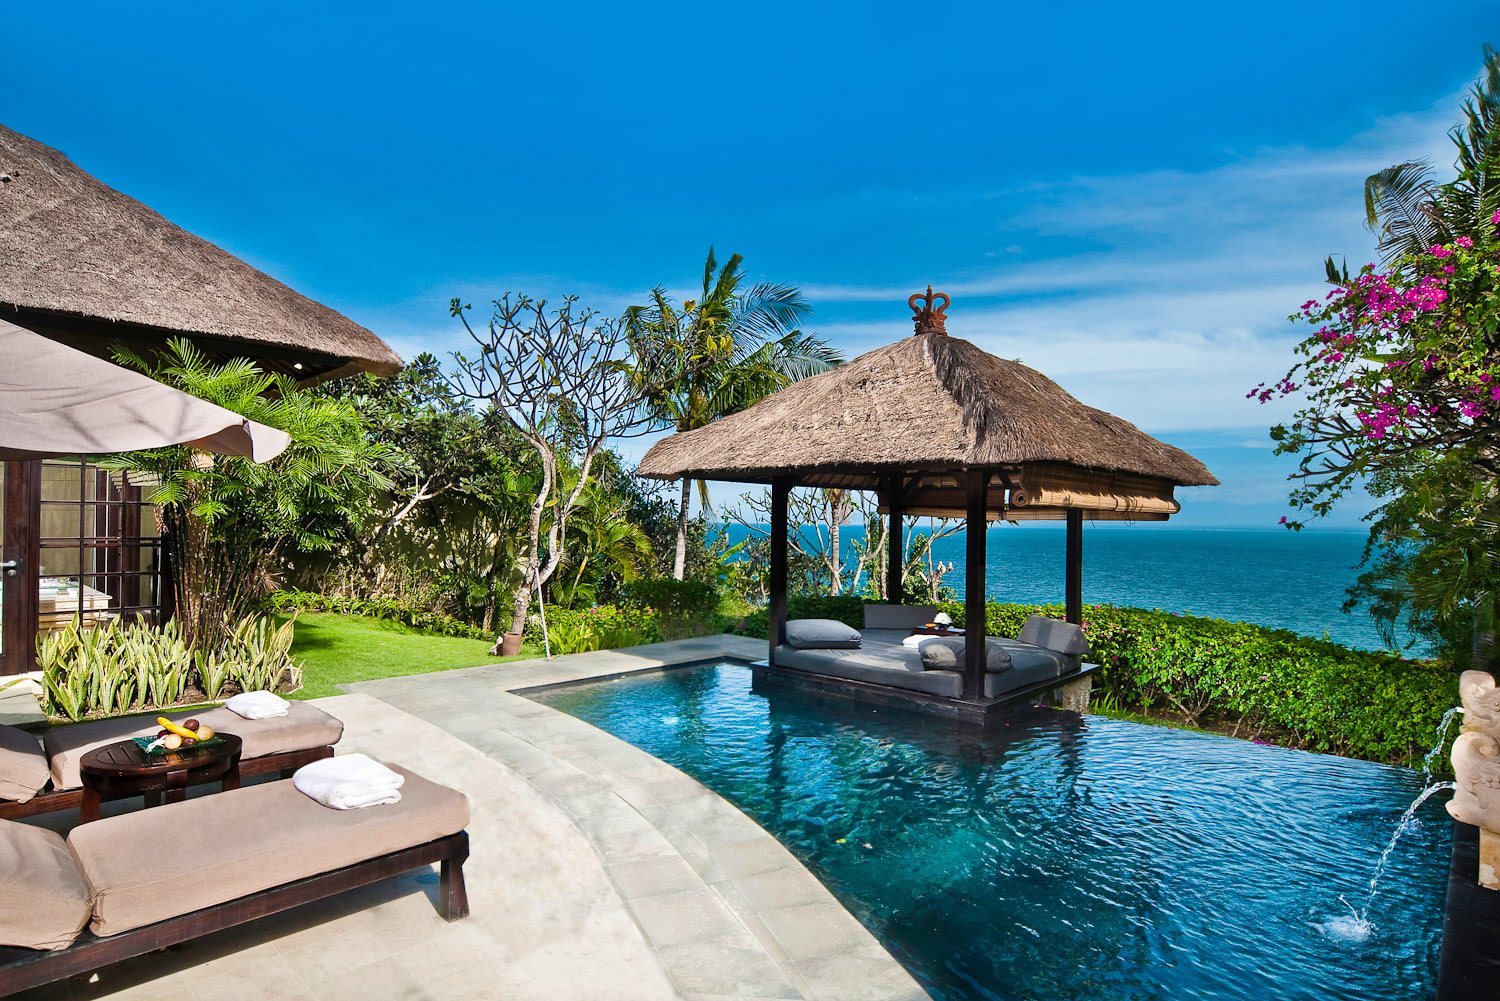 Ayana Resort & Spa in Jimbaran Bay, Indonesia.